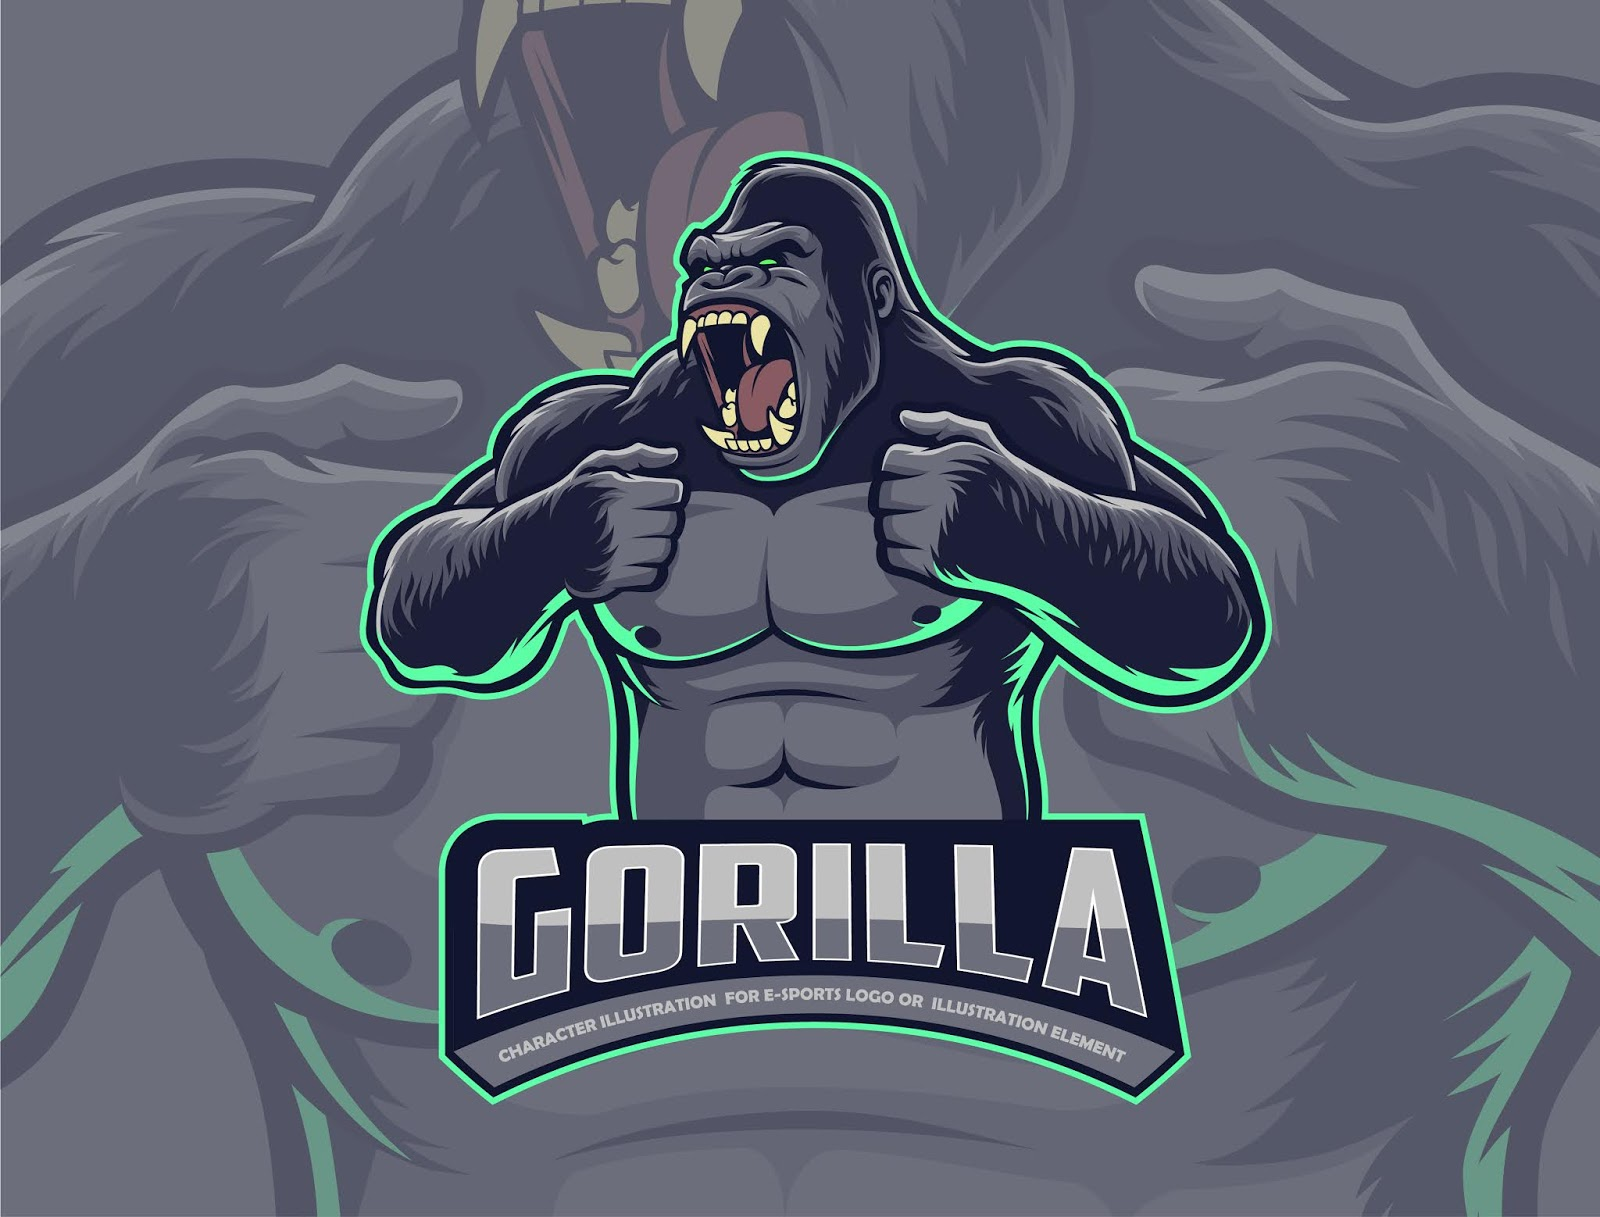 Gorilla Beating Chest Free Download Vector CDR, AI, EPS and PNG Formats